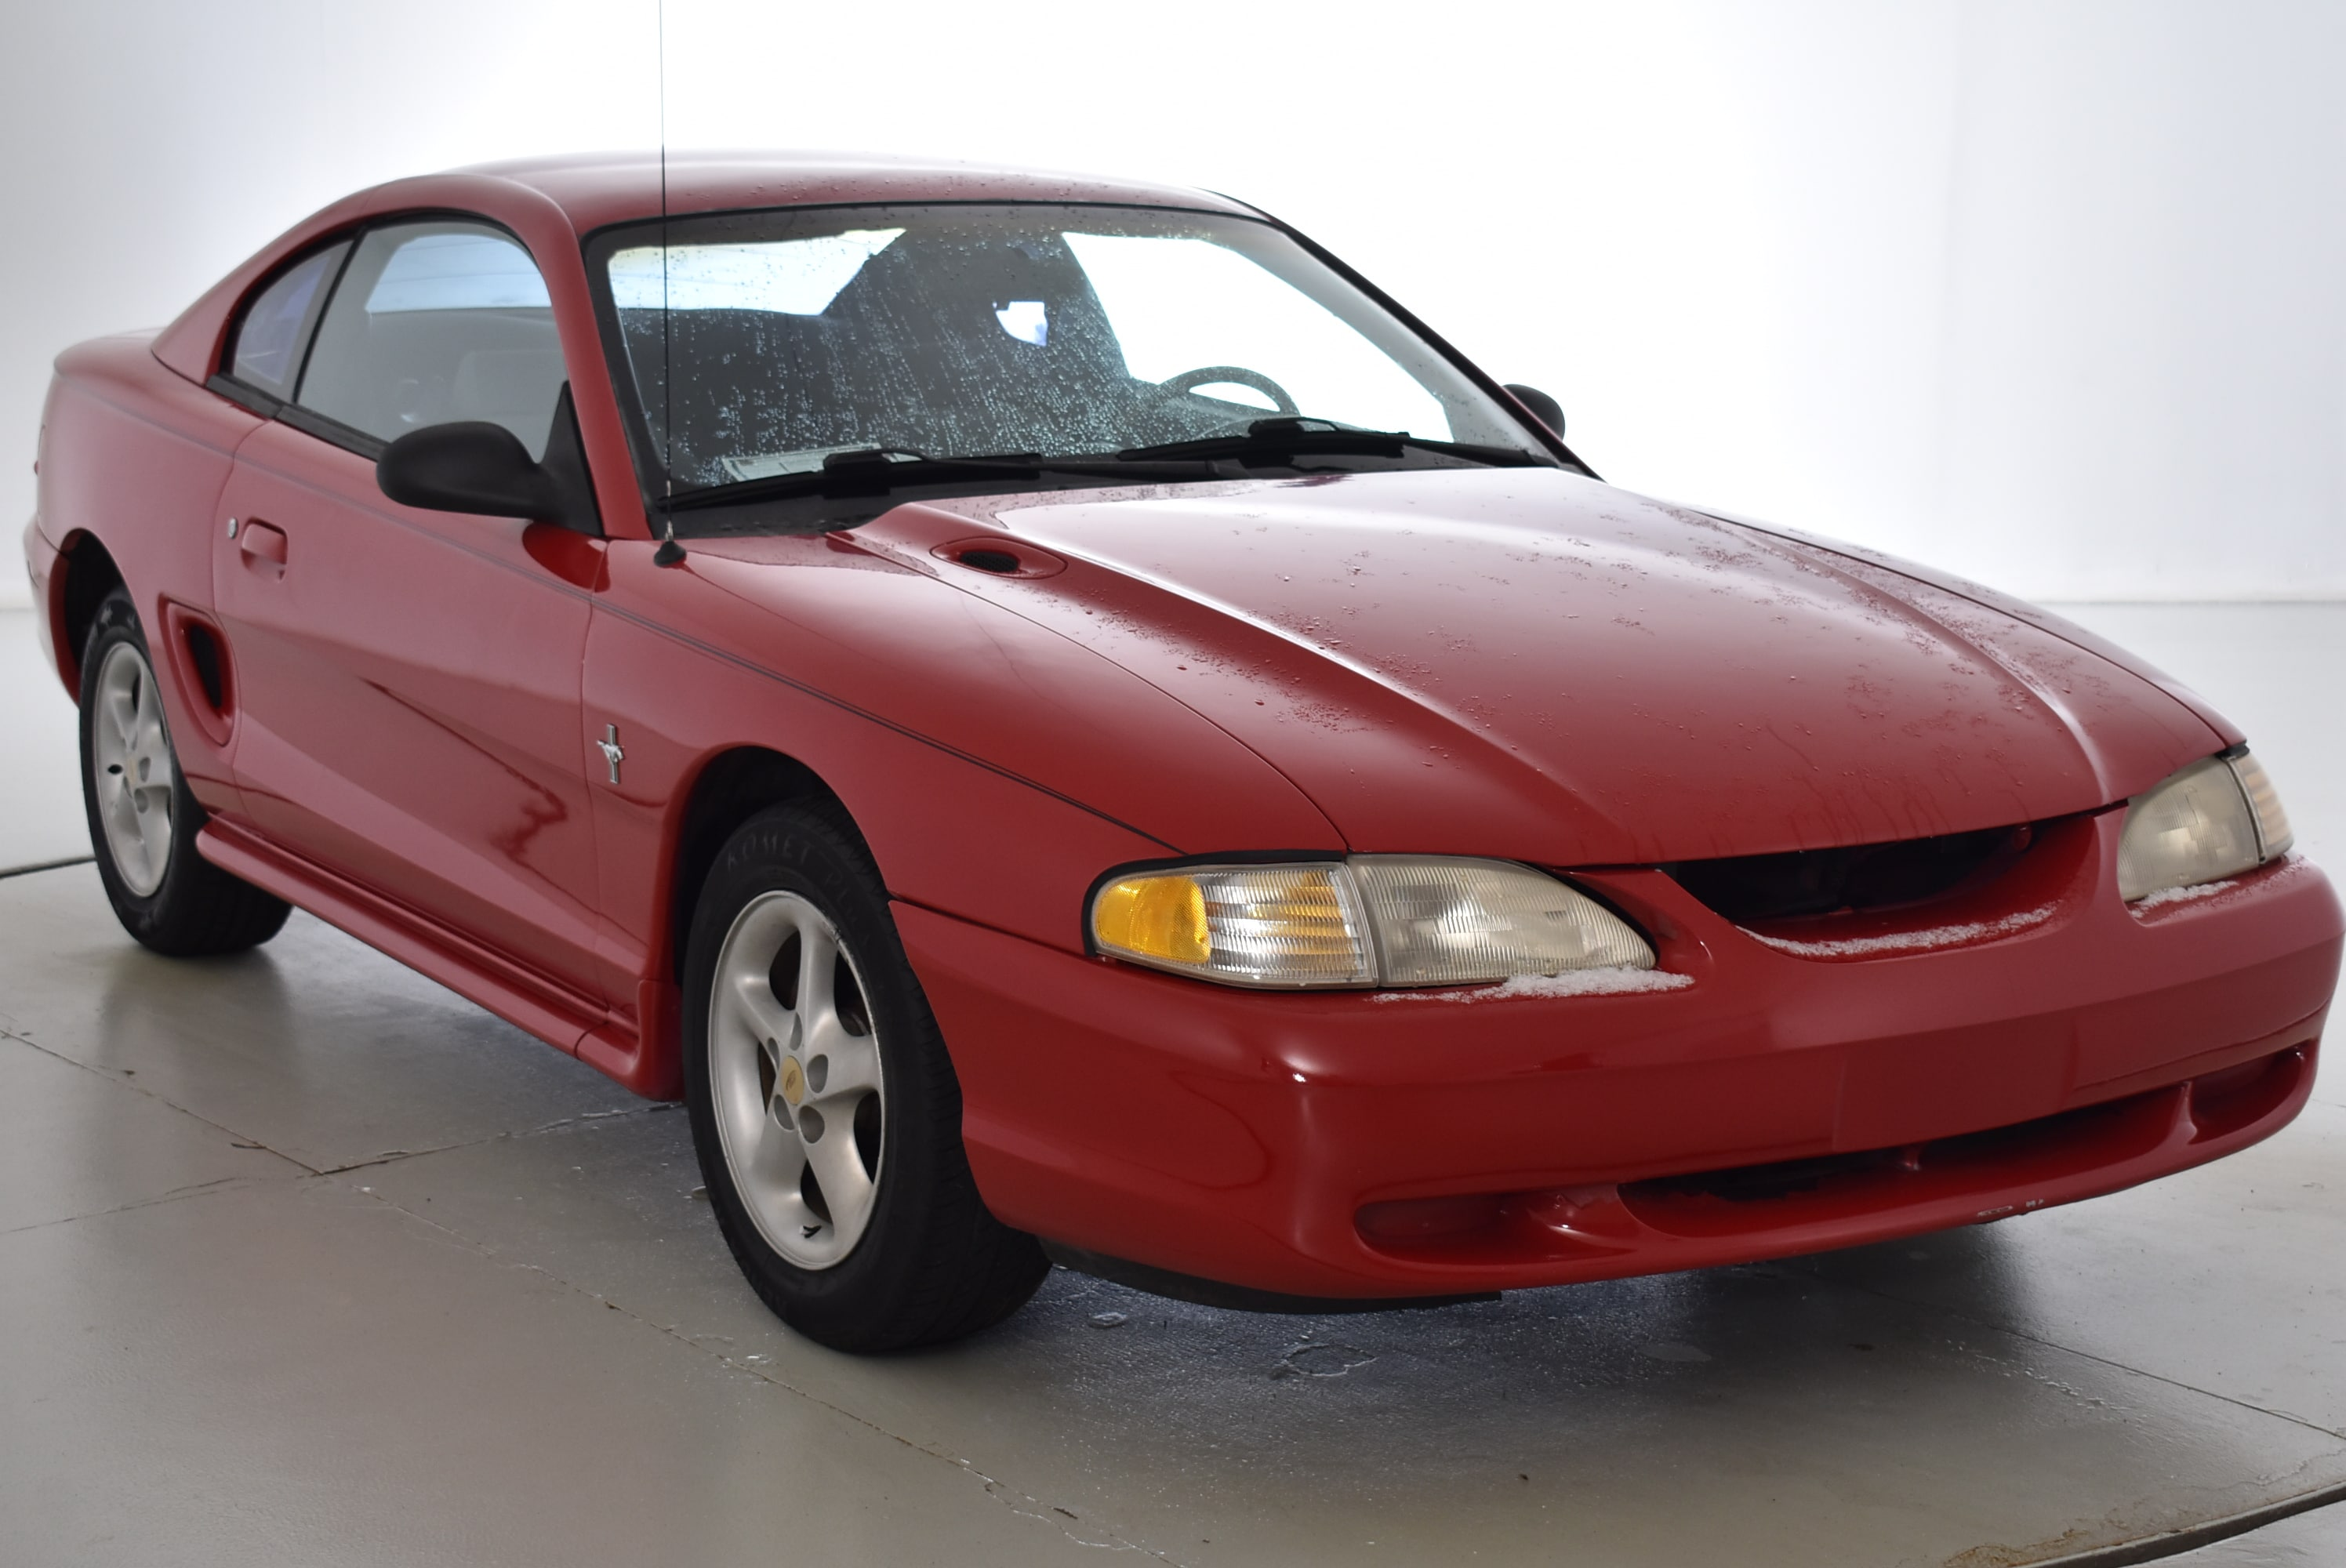 Used 1995 ford mustang for sale at swope freedom plan vin